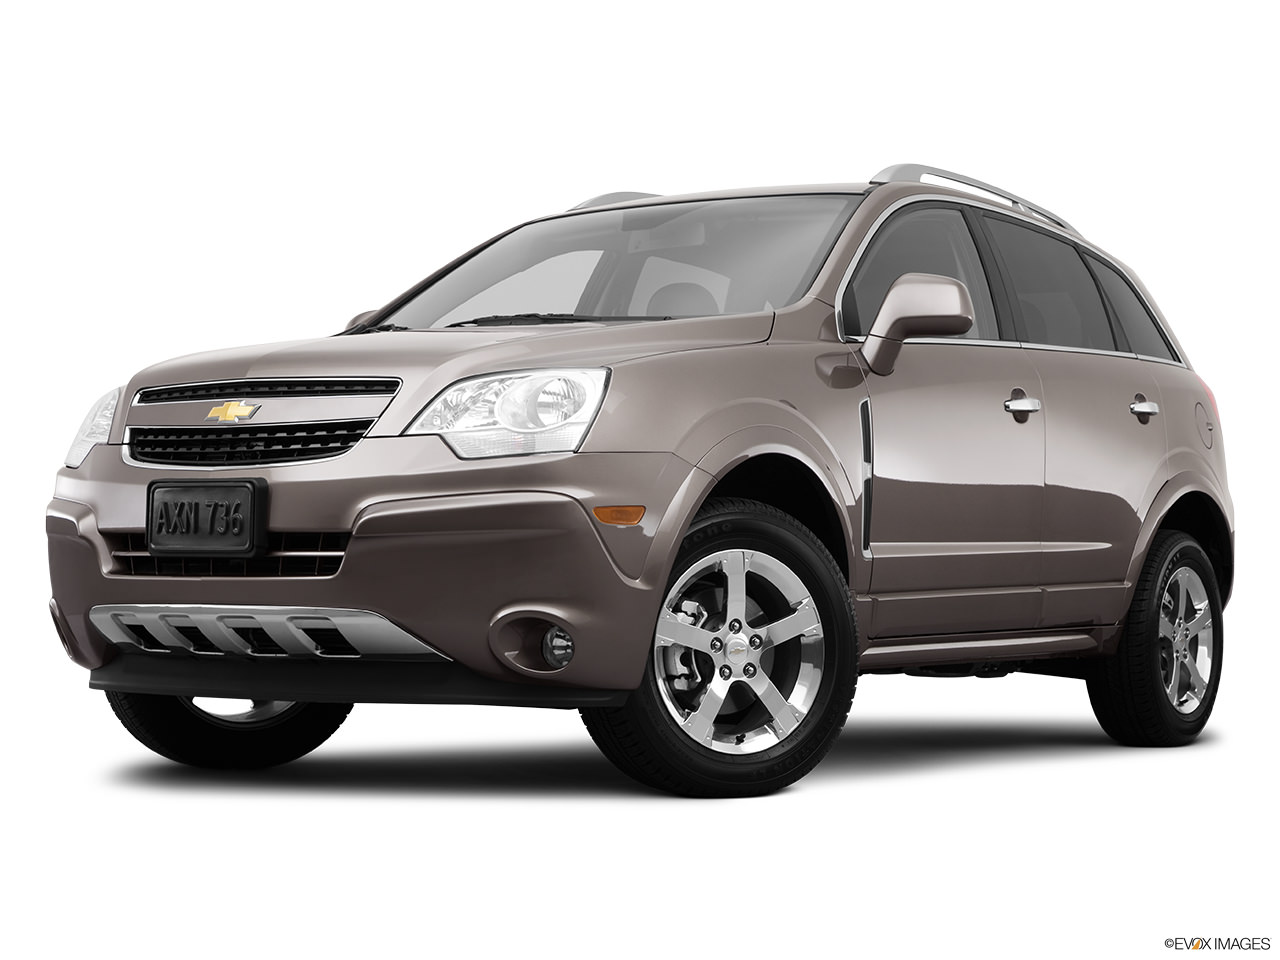 a buyer s guide to the 2012 chevrolet captiva sport yourmechanic rh yourmechanic com 2015 chevrolet captiva owners manual 2012 chevrolet cruze owners manual pdf